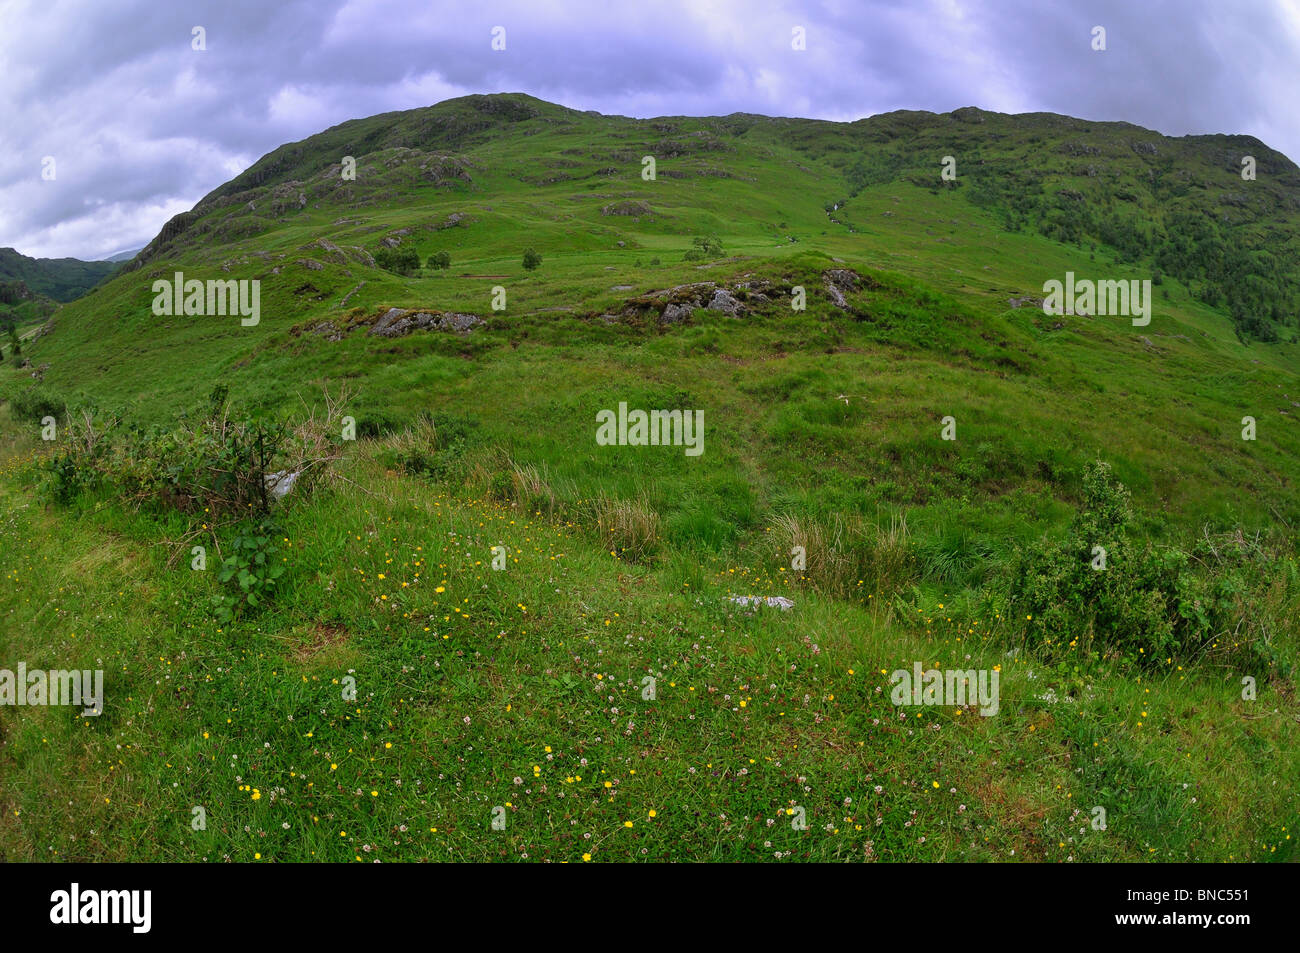 A green highland mountain near Glenfinnan seems to glow on an overcast day - Stock Image